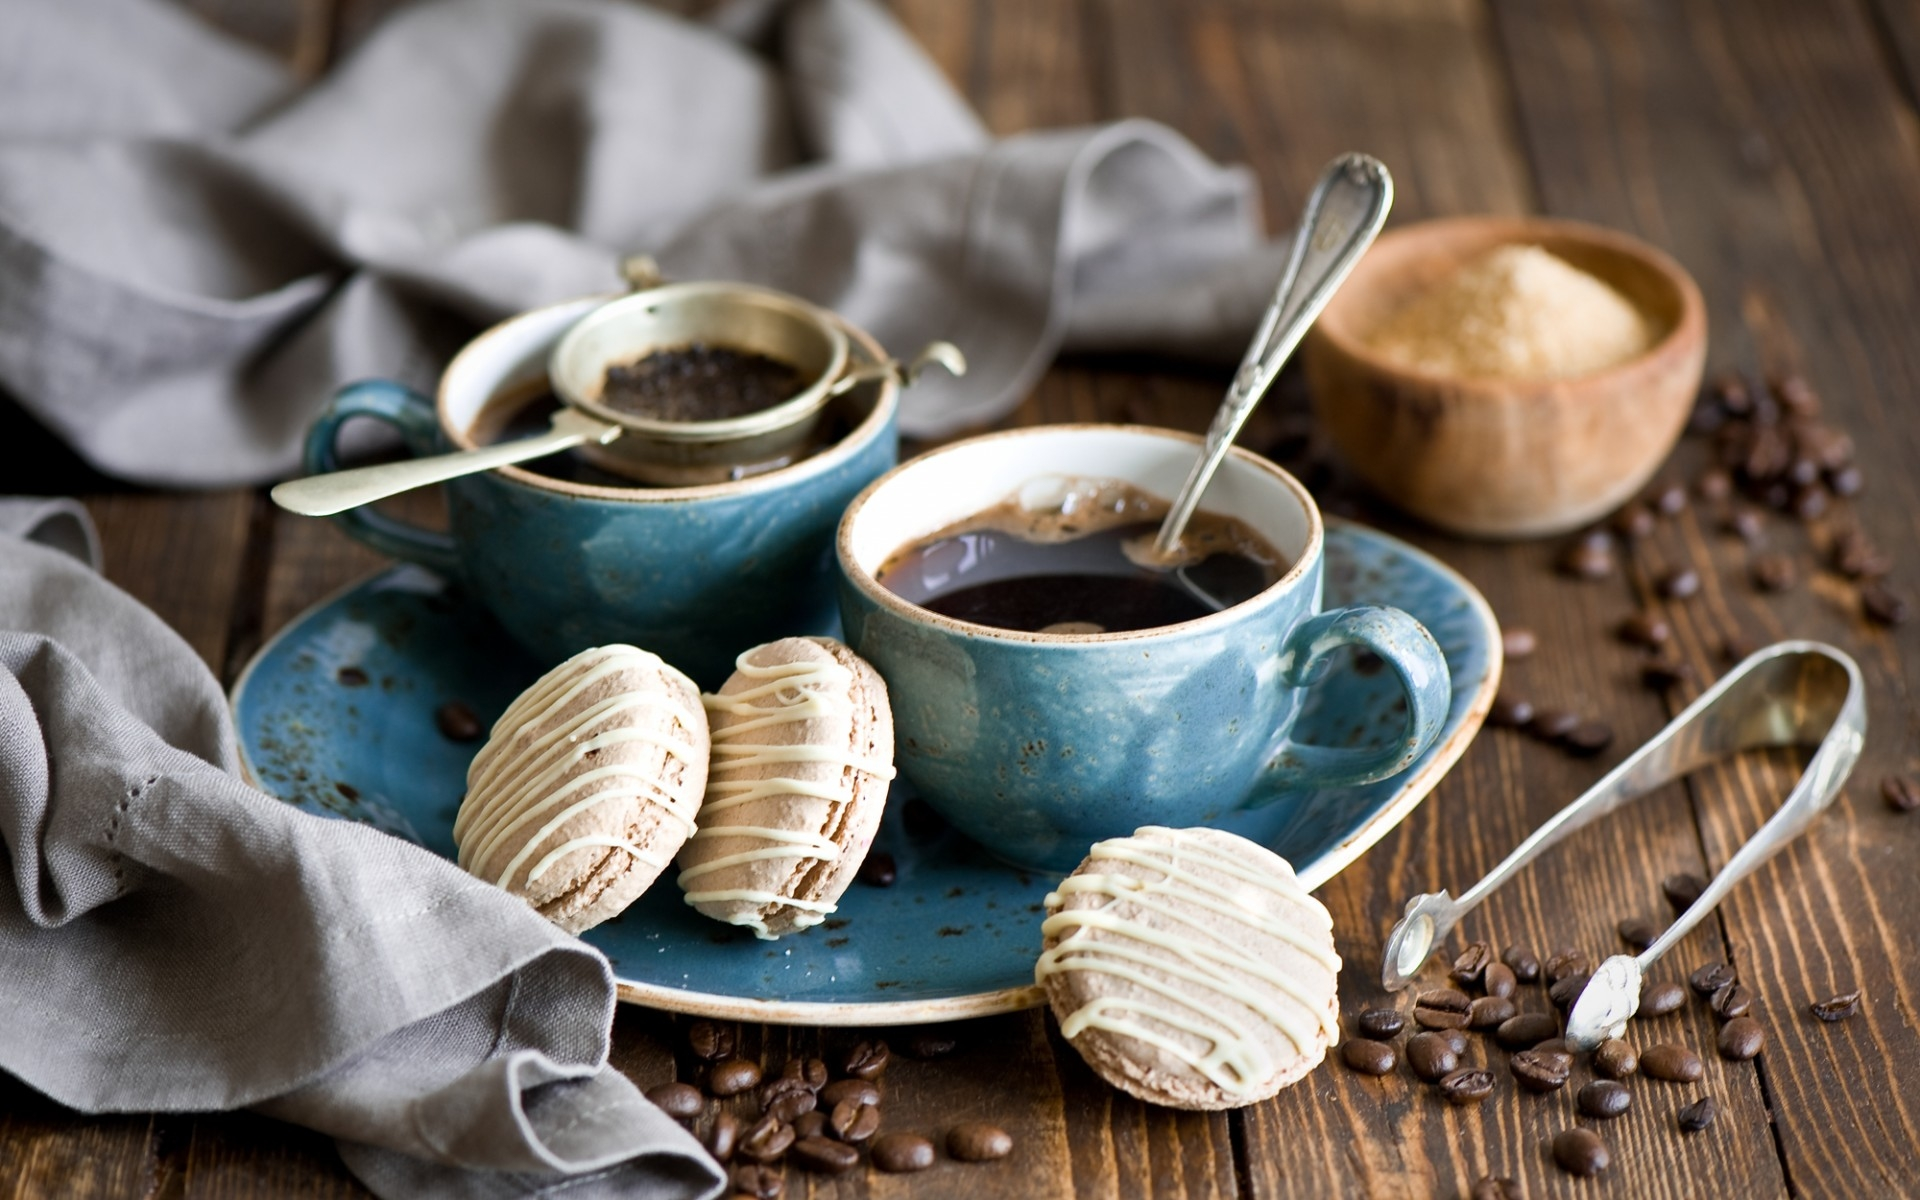 Cute Coffee Mug Wallpaper Cakes And Coffee Full Hd Wallpaper And Background Image